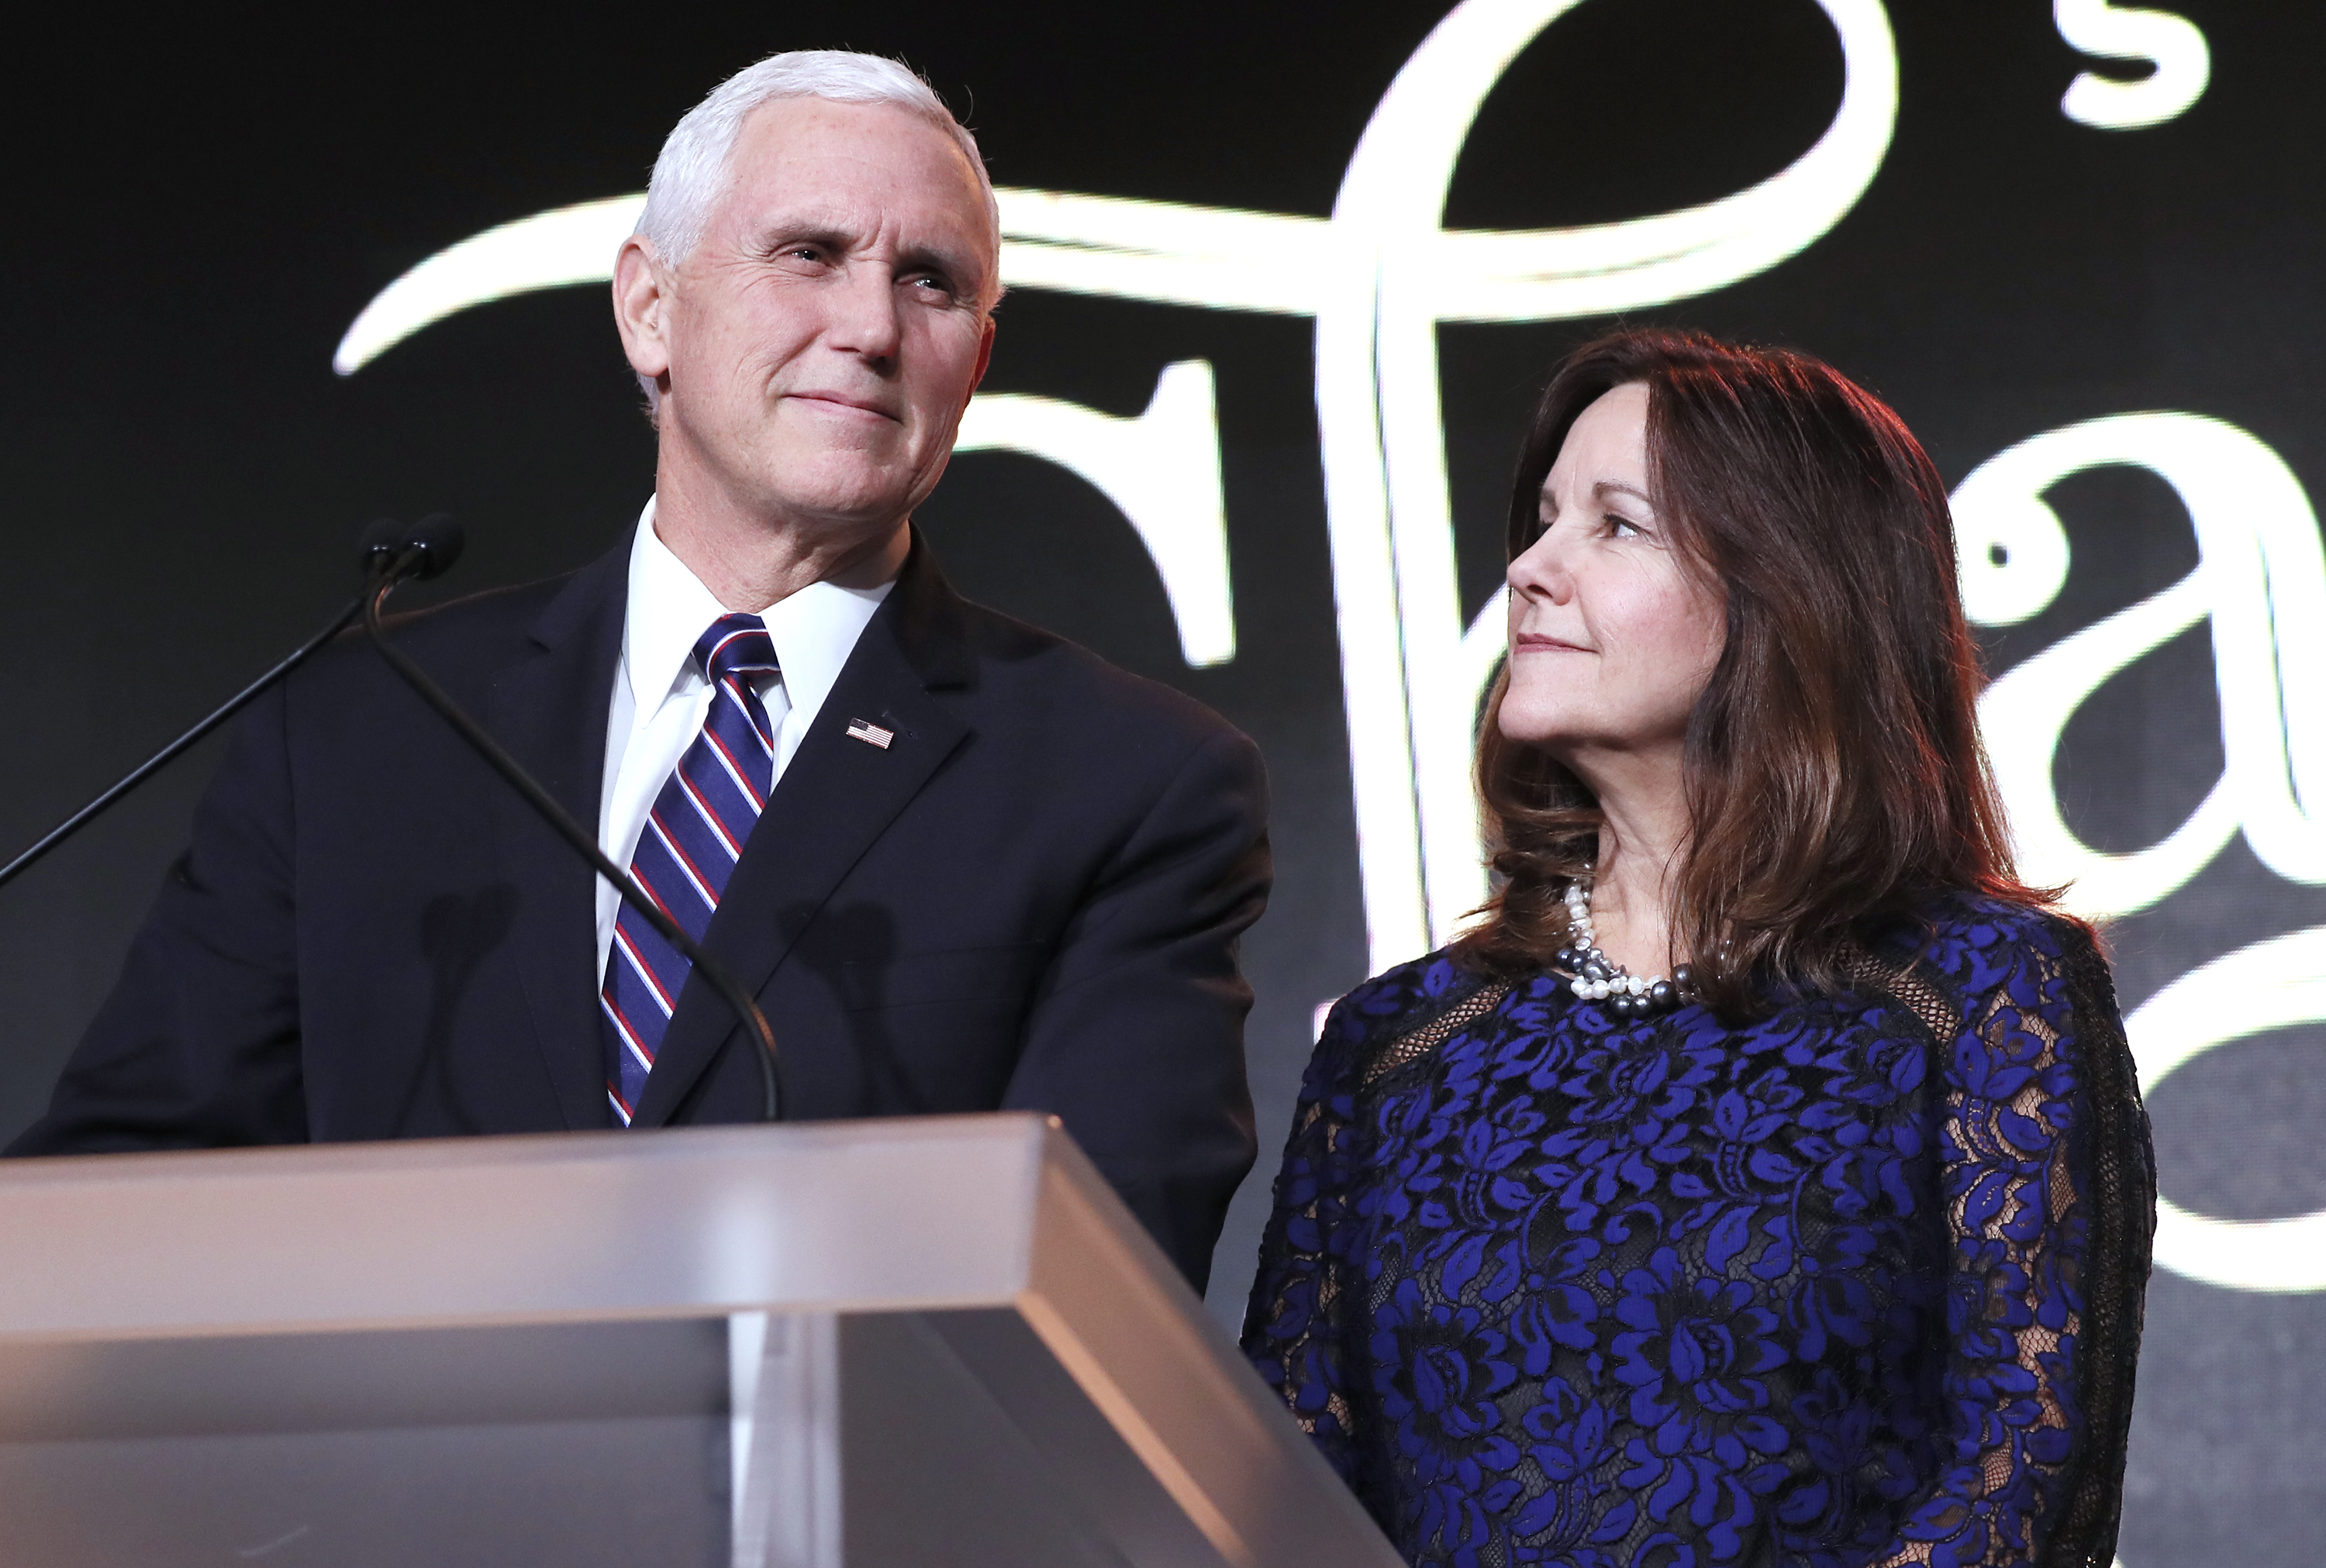 Vice President Mike Pence and Karen Pence speak at the Save the Storks 2nd Annual Stork Charity Ball at the Trump International Hotel.